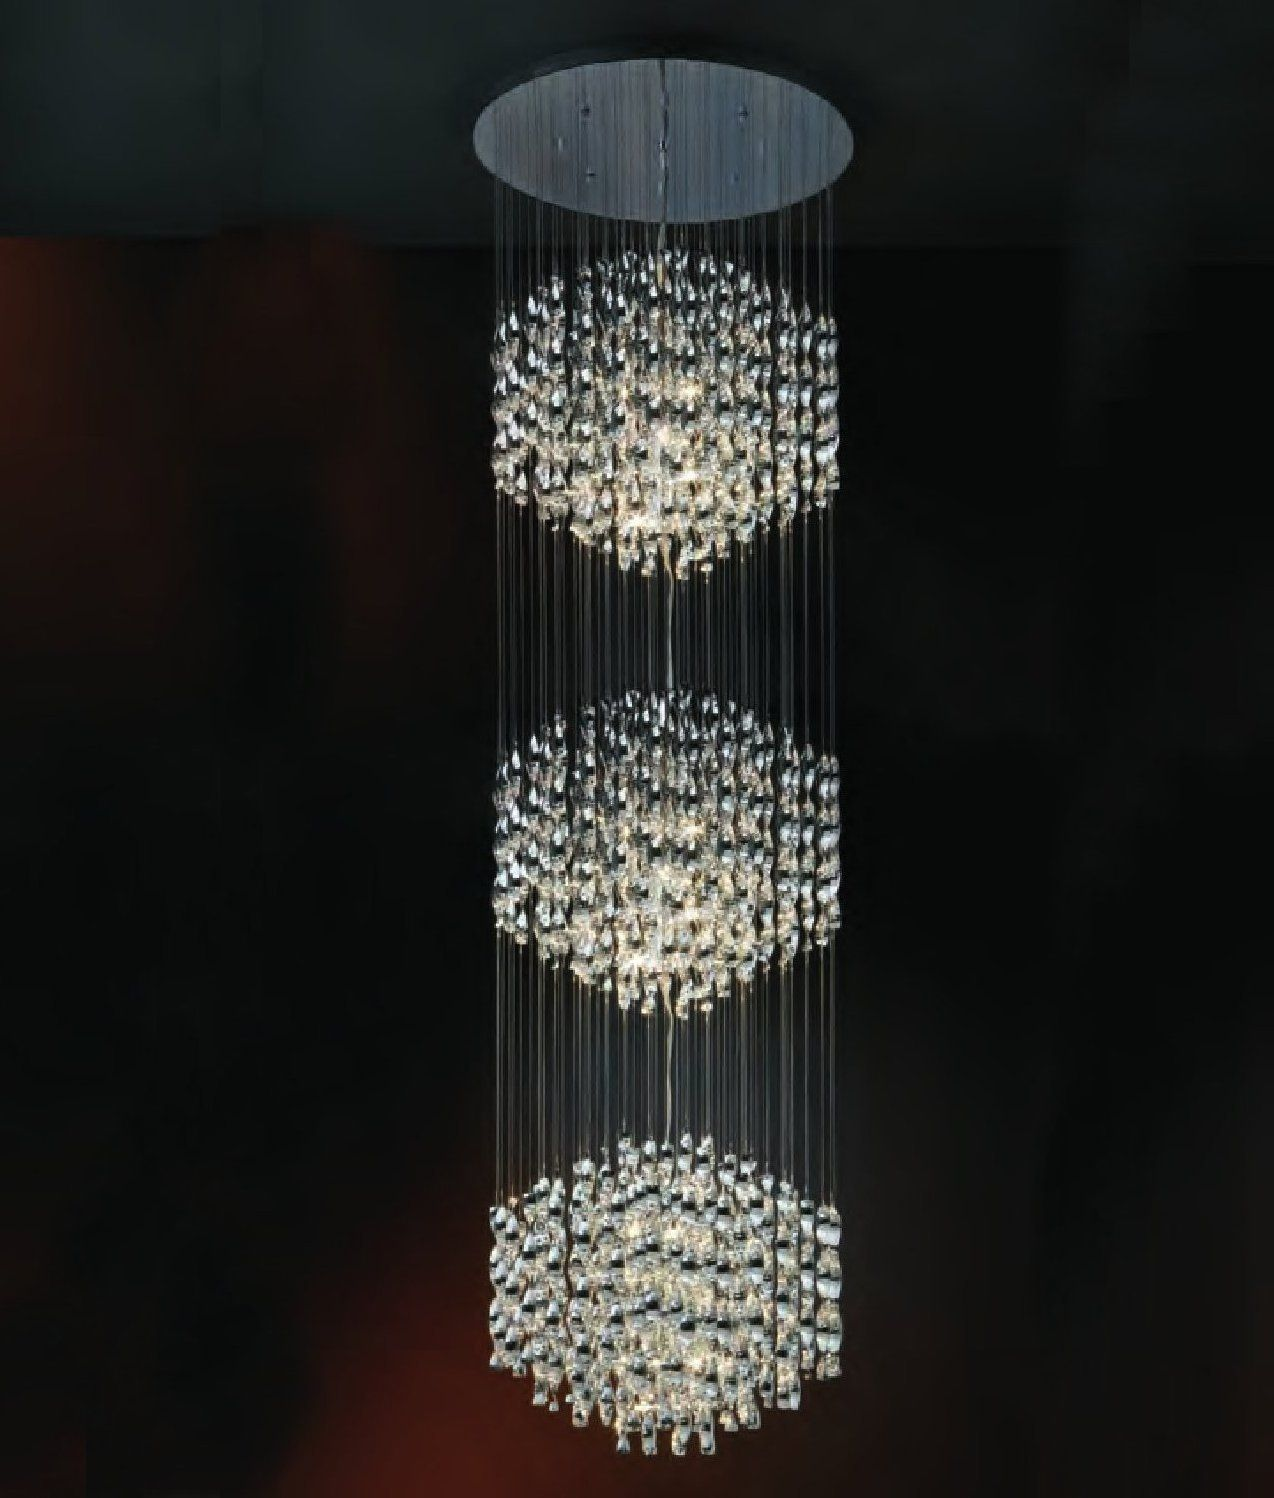 drop pendant lighting. A Hanging Spiral Long Drop Pendant In Chrome, Prefect For Installation On Tall Ceilings Or Atriums, From Lighting Styles.